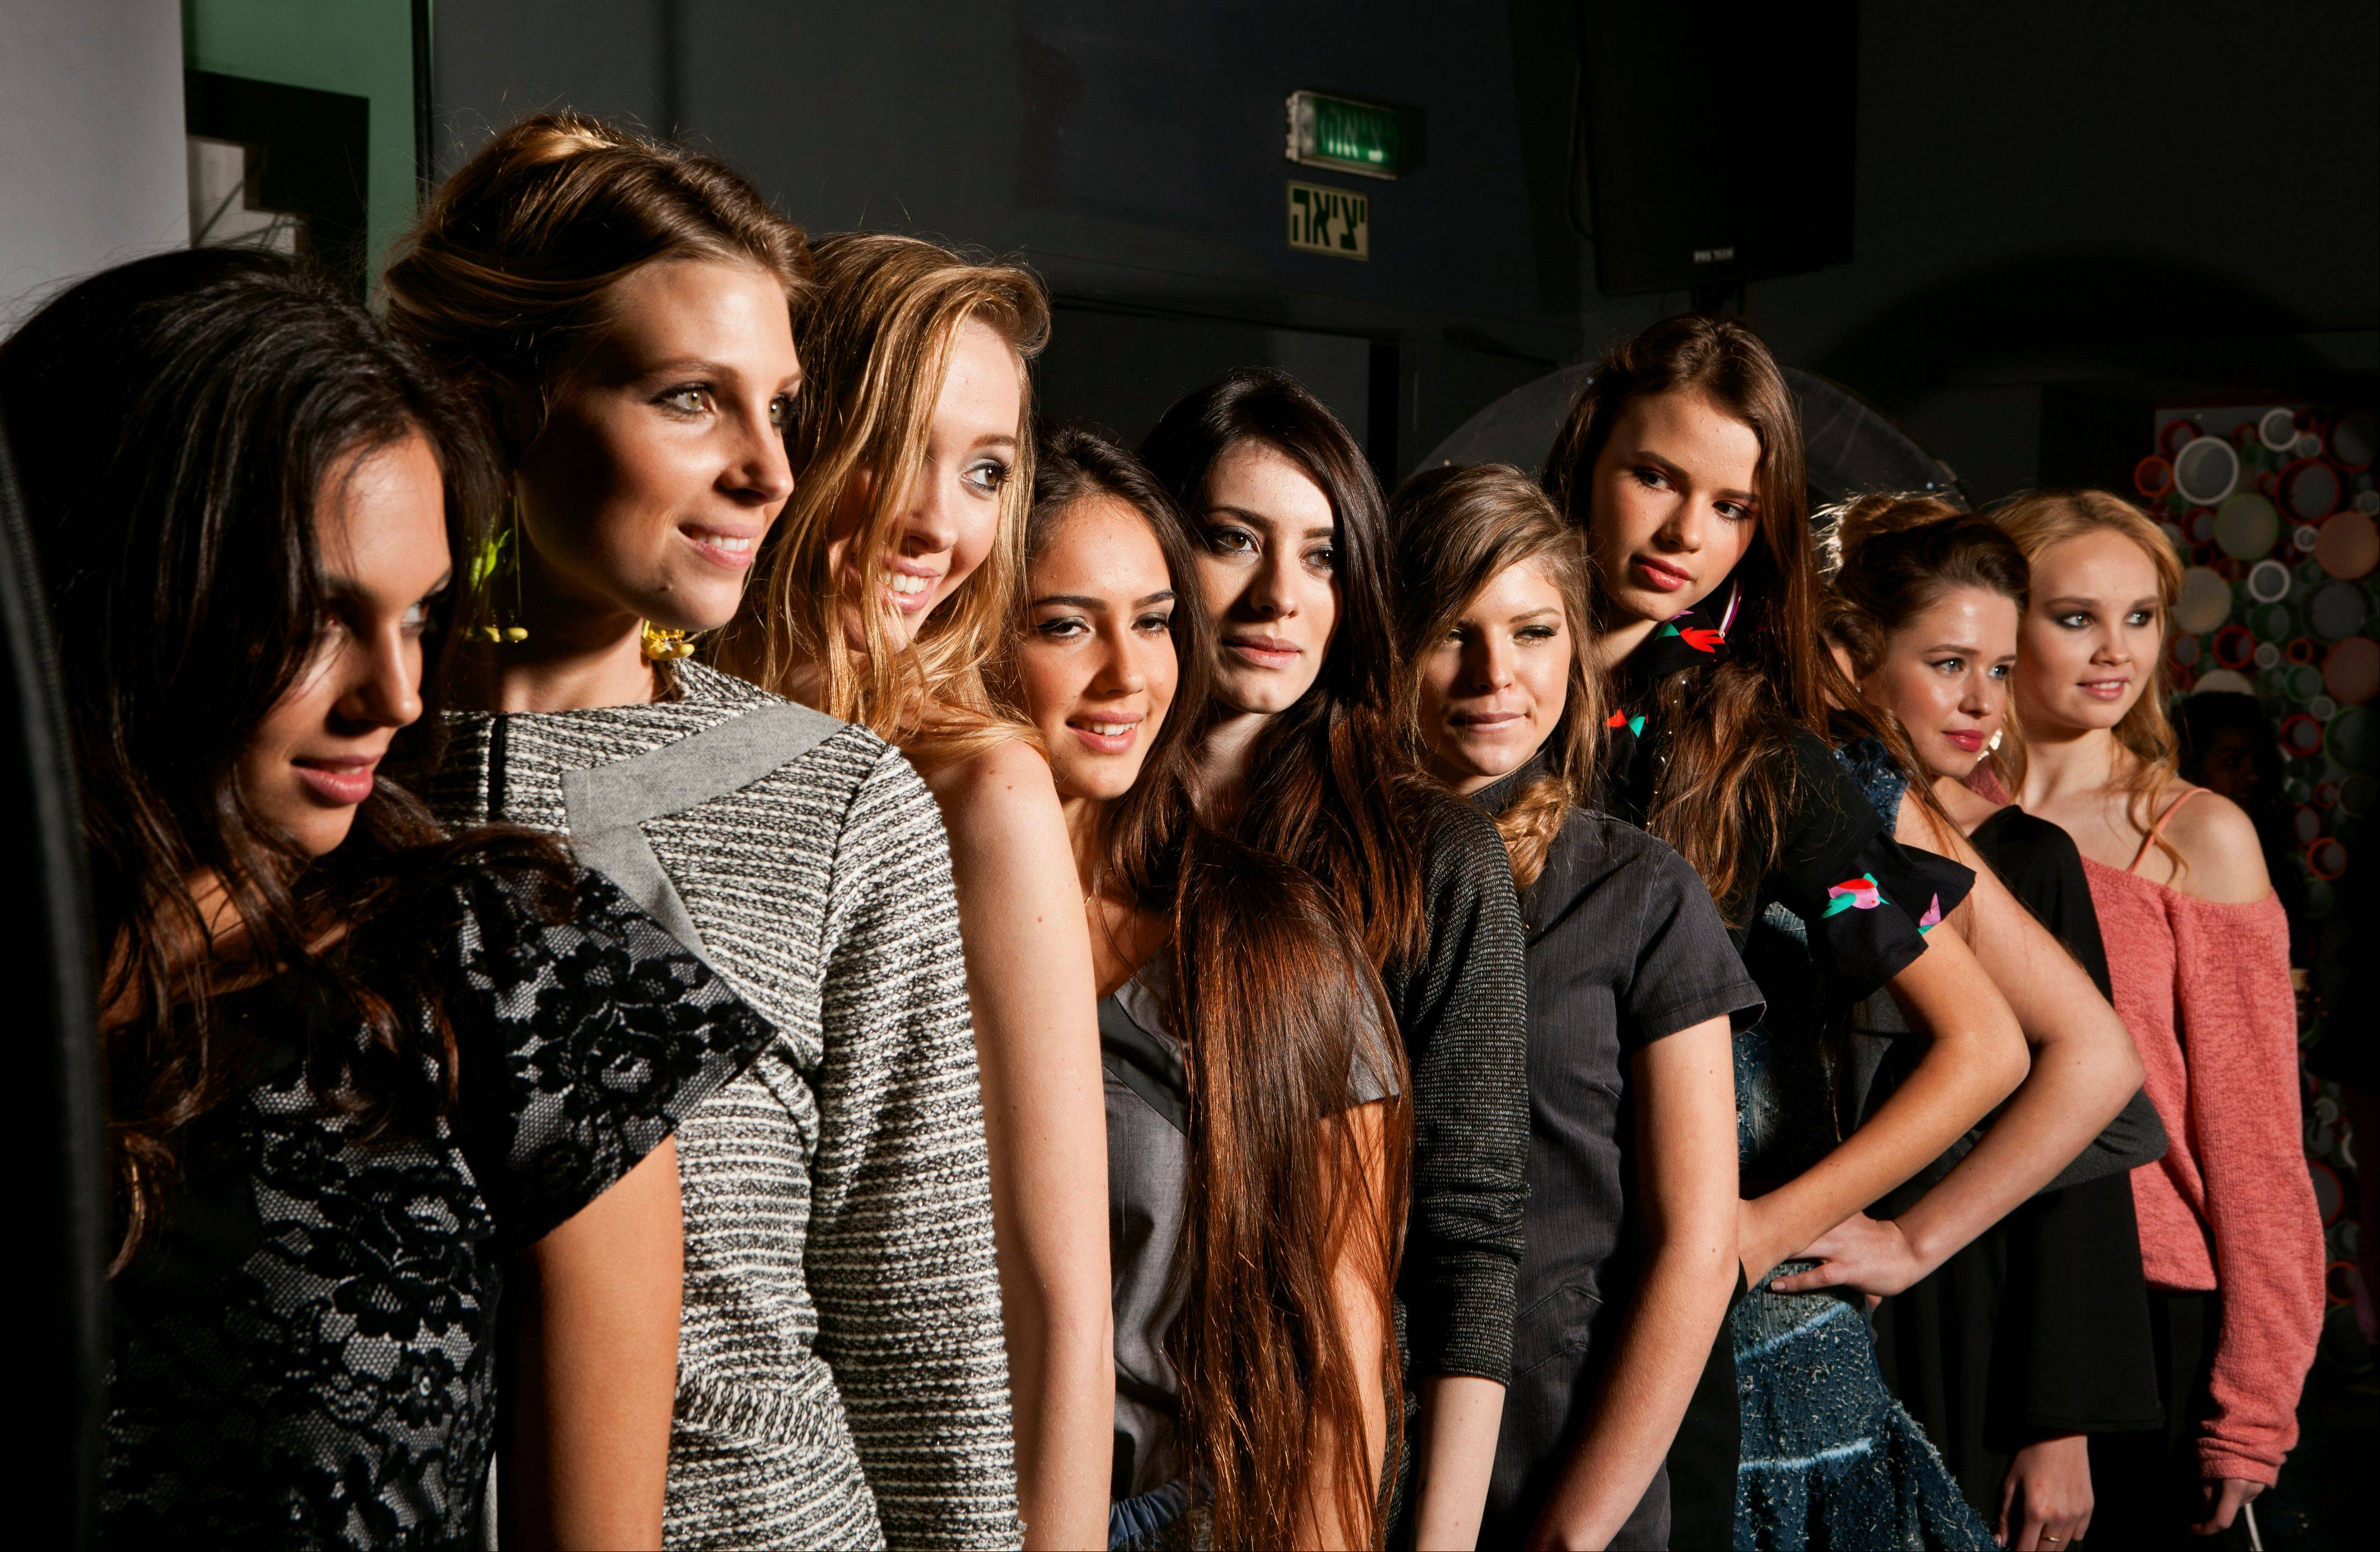 Models stand in line Tuesday for a fashion shoot in Ramat Hasharon, Israel. A new Israeli law prohibits the employment of underweight fashion models. The new law requires models to produce a medical report no older than three months at every shoot for the Israeli market, stating that they are not malnourished by World Health Organization standards.